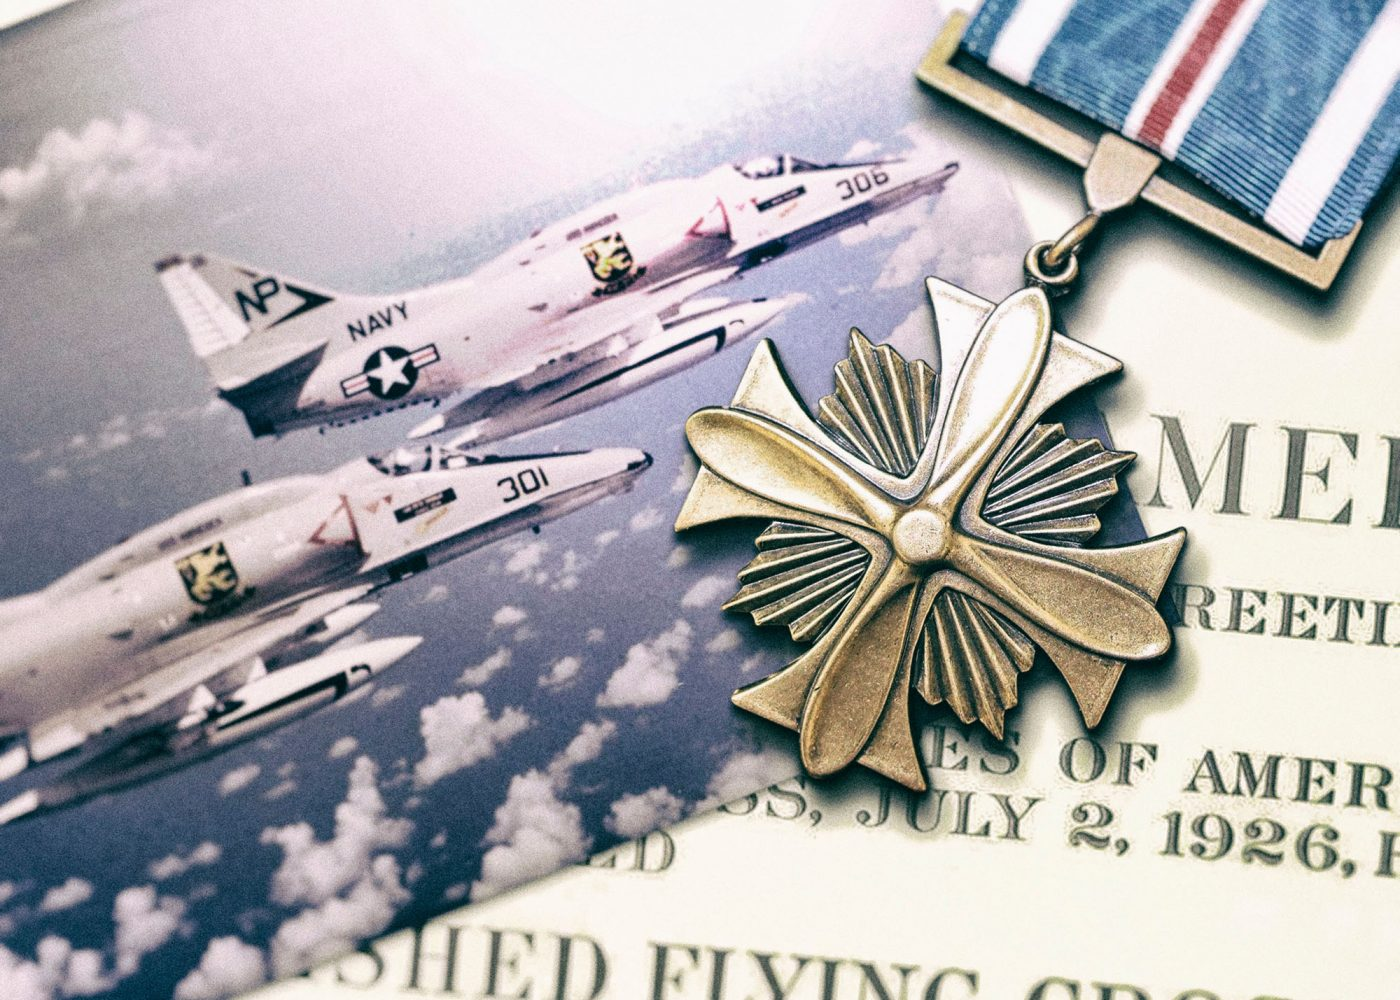 023 – The Distinguished Flying Cross